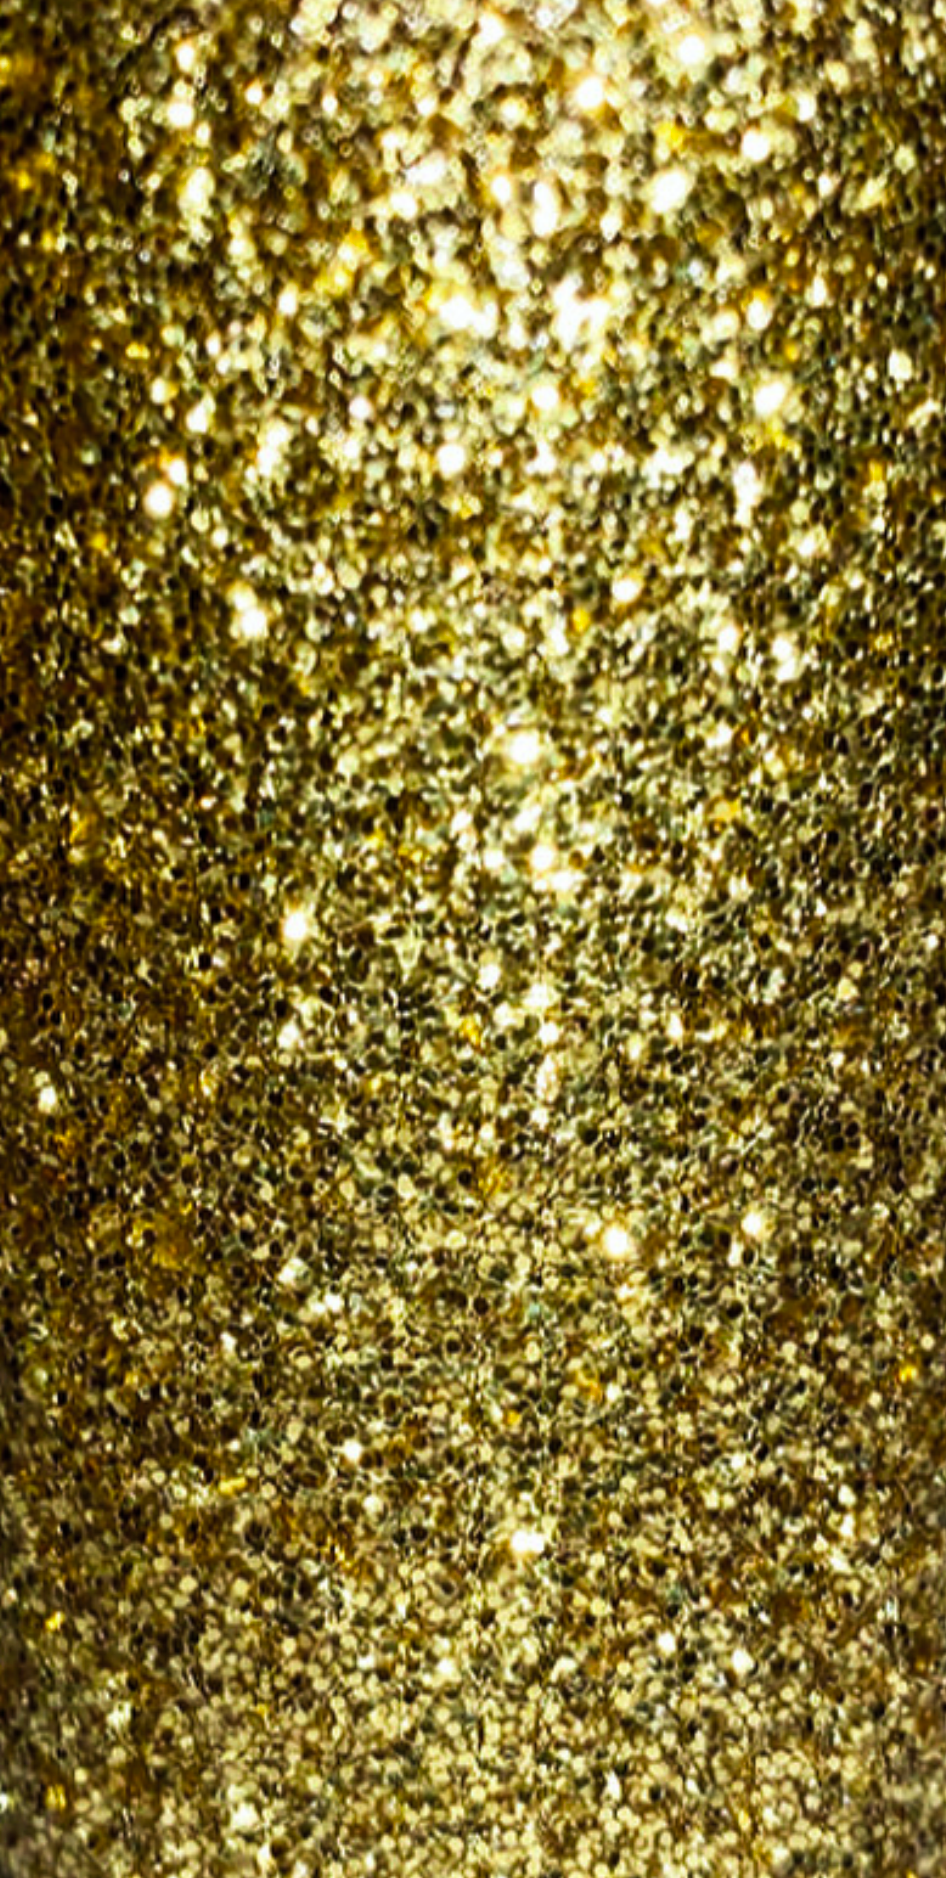 All that Glitter is Gold